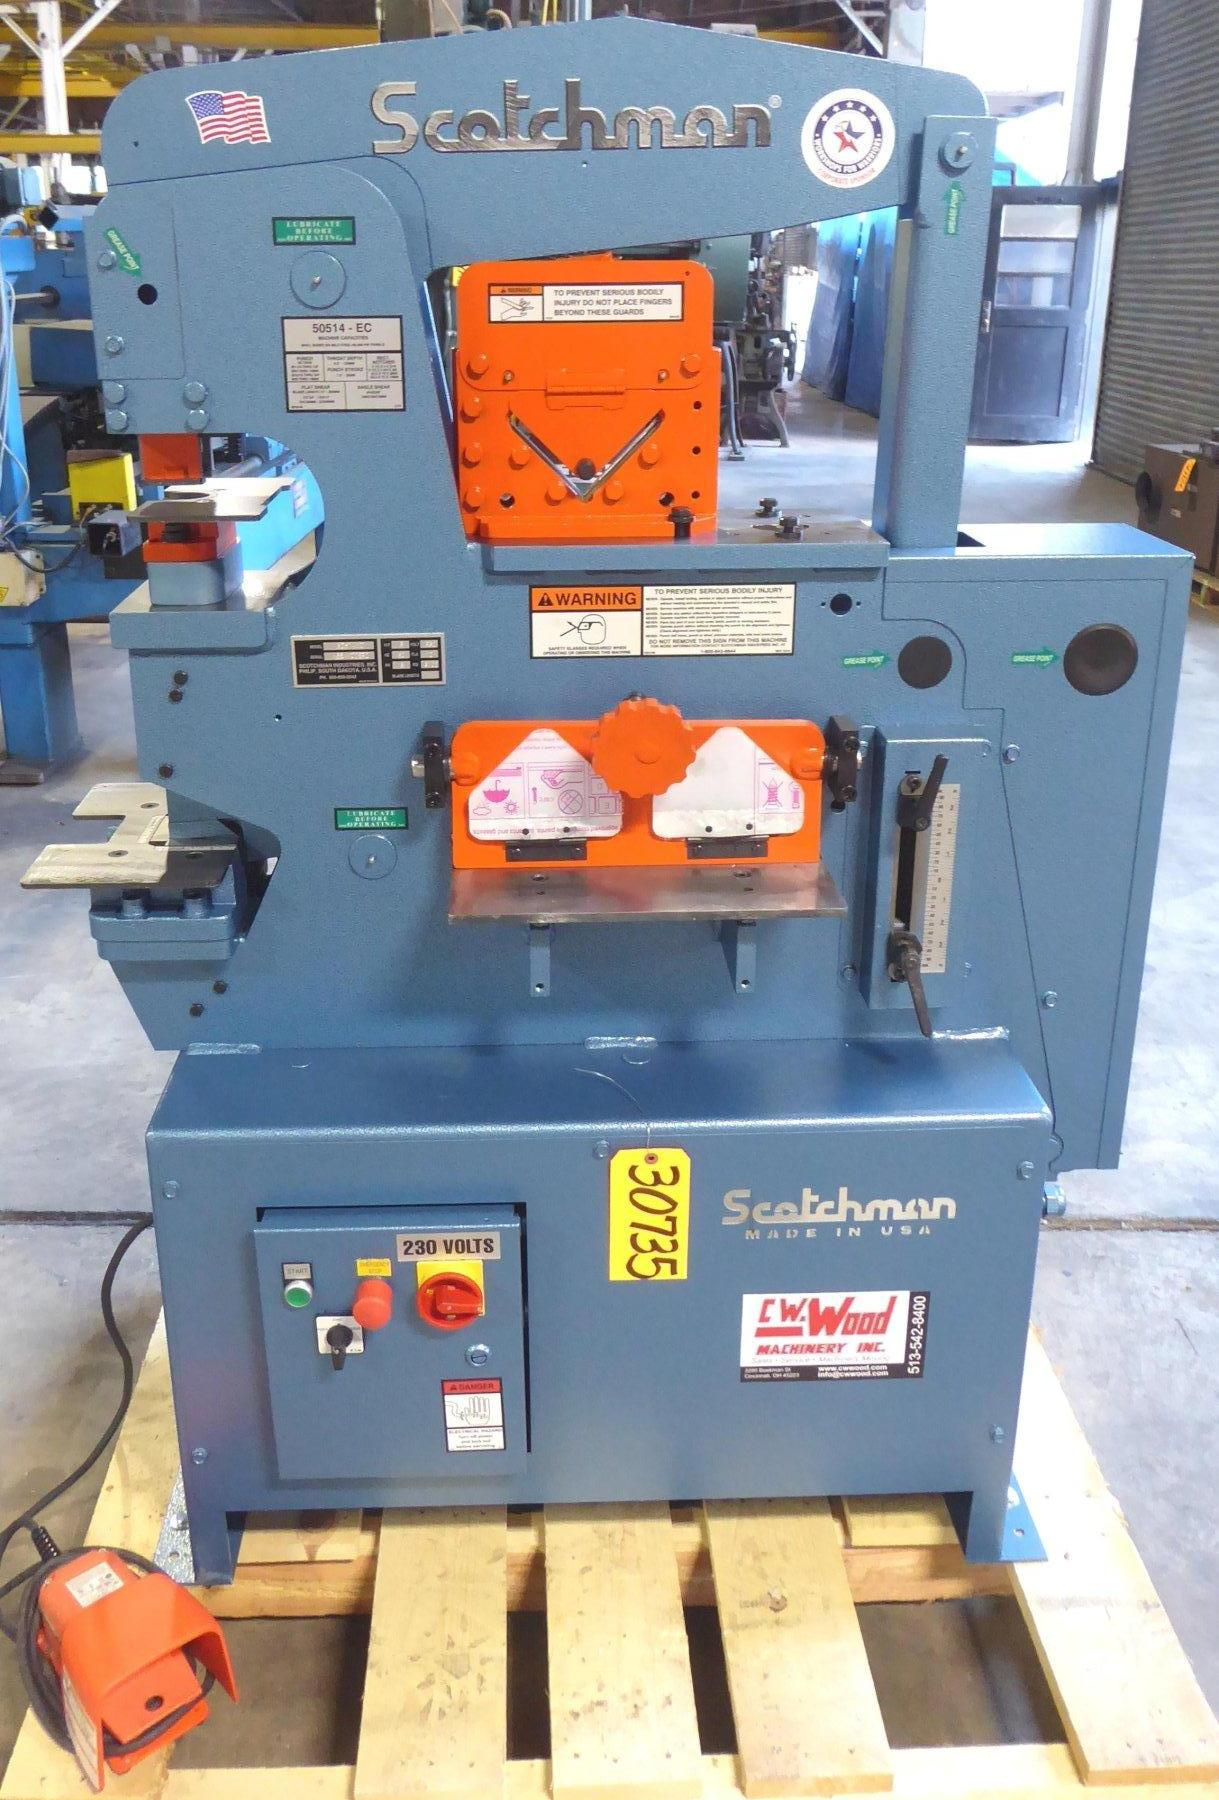 "4"" x 4"" x 3/8"" SCOTCHMAN Hydraulic Ironworker, No. 50514-EC, 50 Ton, Punch, Bar Shear, Notcher, New, In Stock"